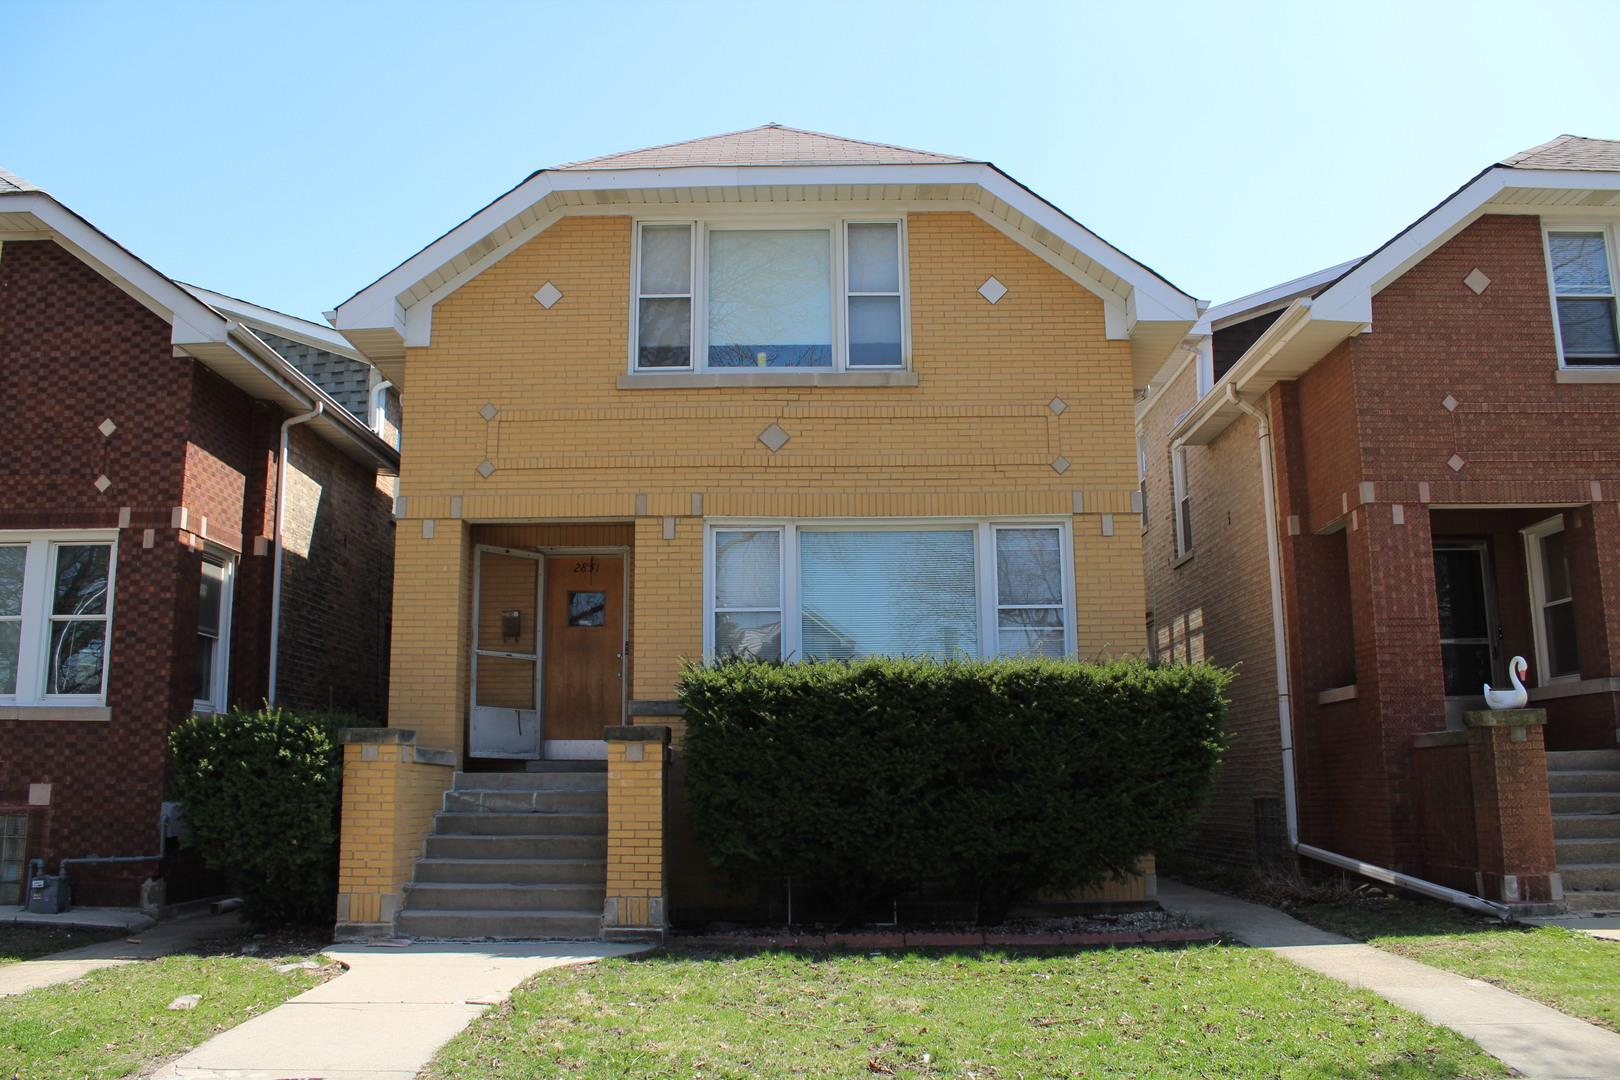 2851 N Linder Avenue, Chicago, IL 60641 - #: 10728061